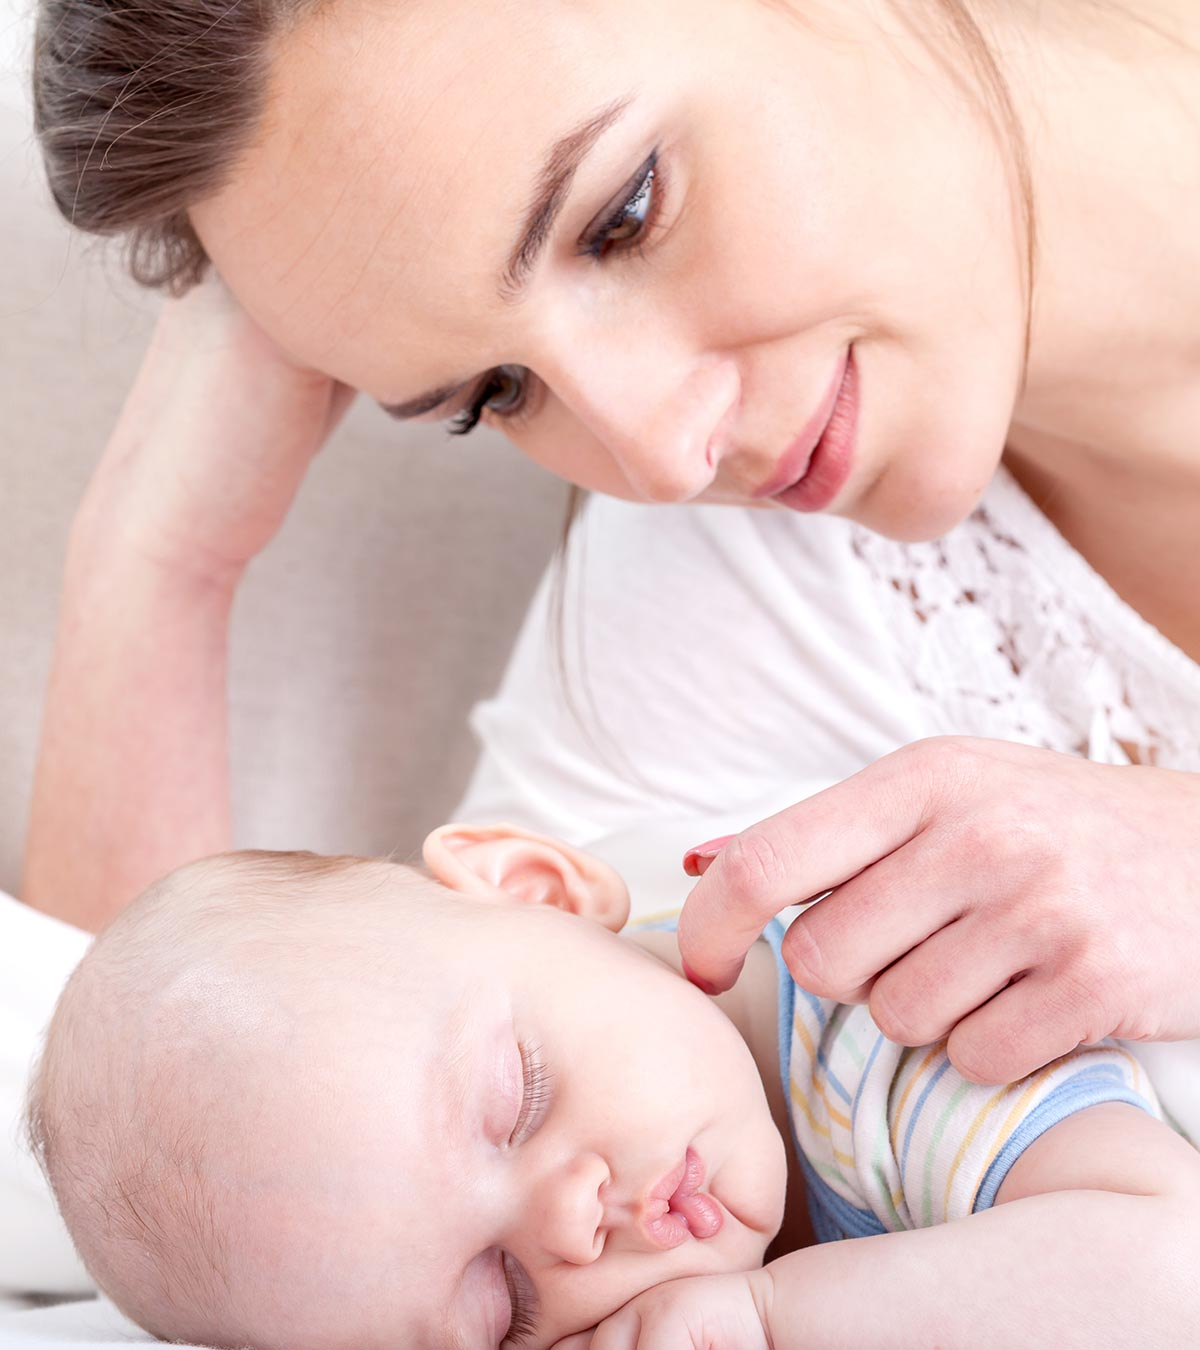 How To Teach Your Baby To Self-Soothe?